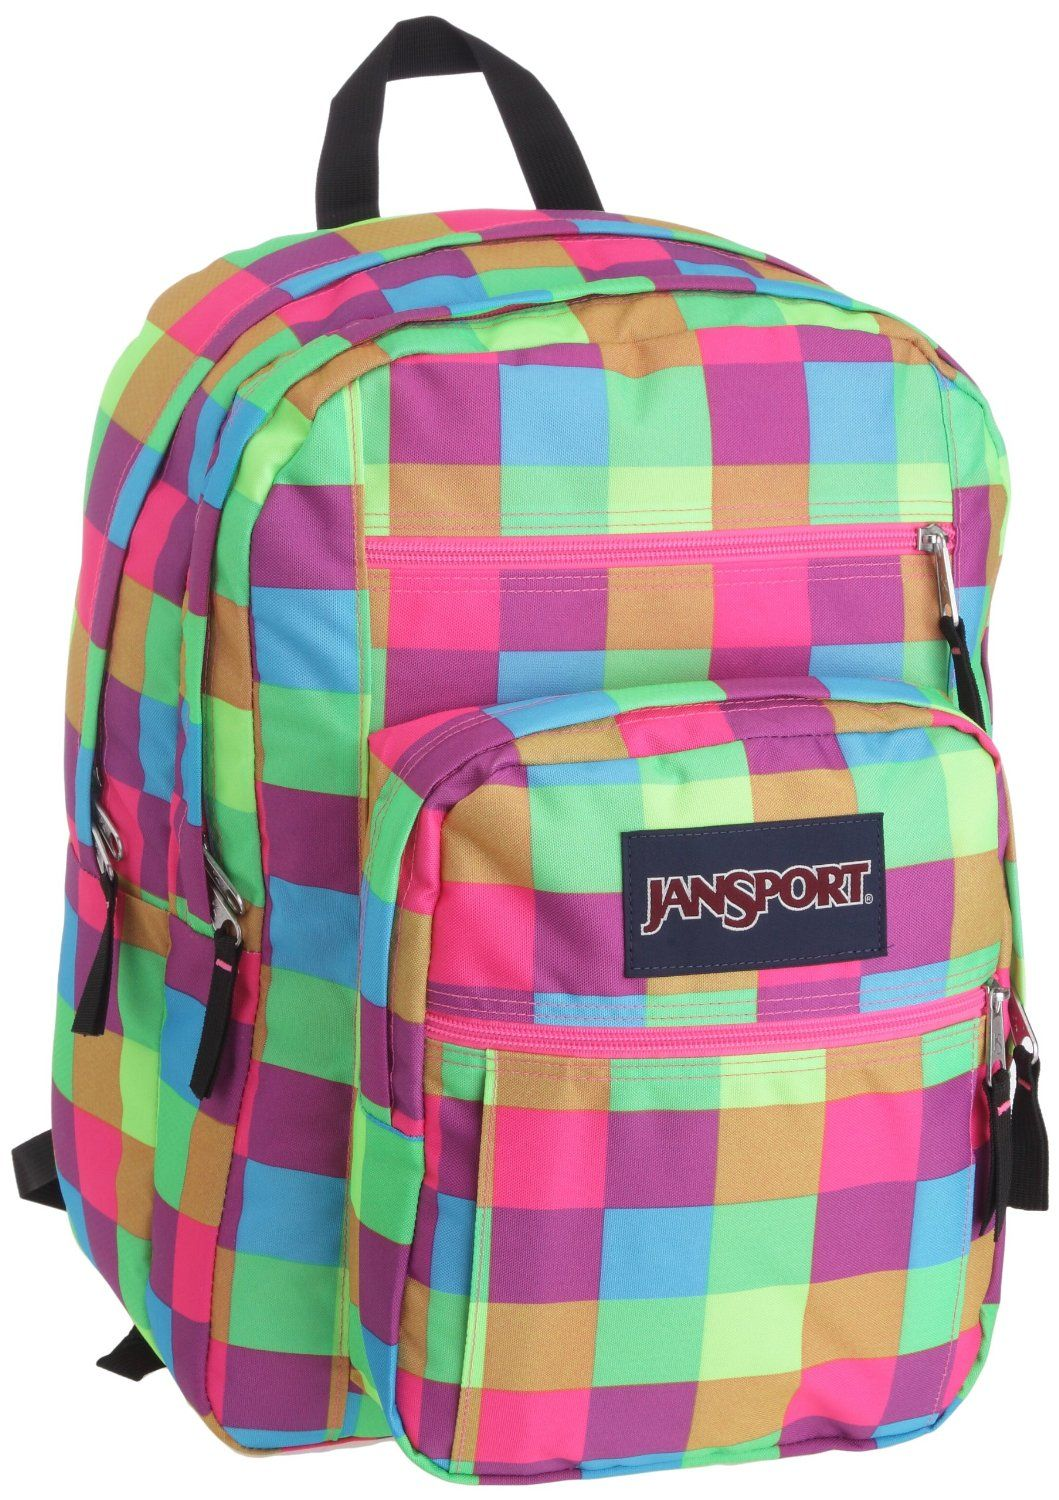 plaid Jansport backpack for girls | Book bags | Pinterest ...